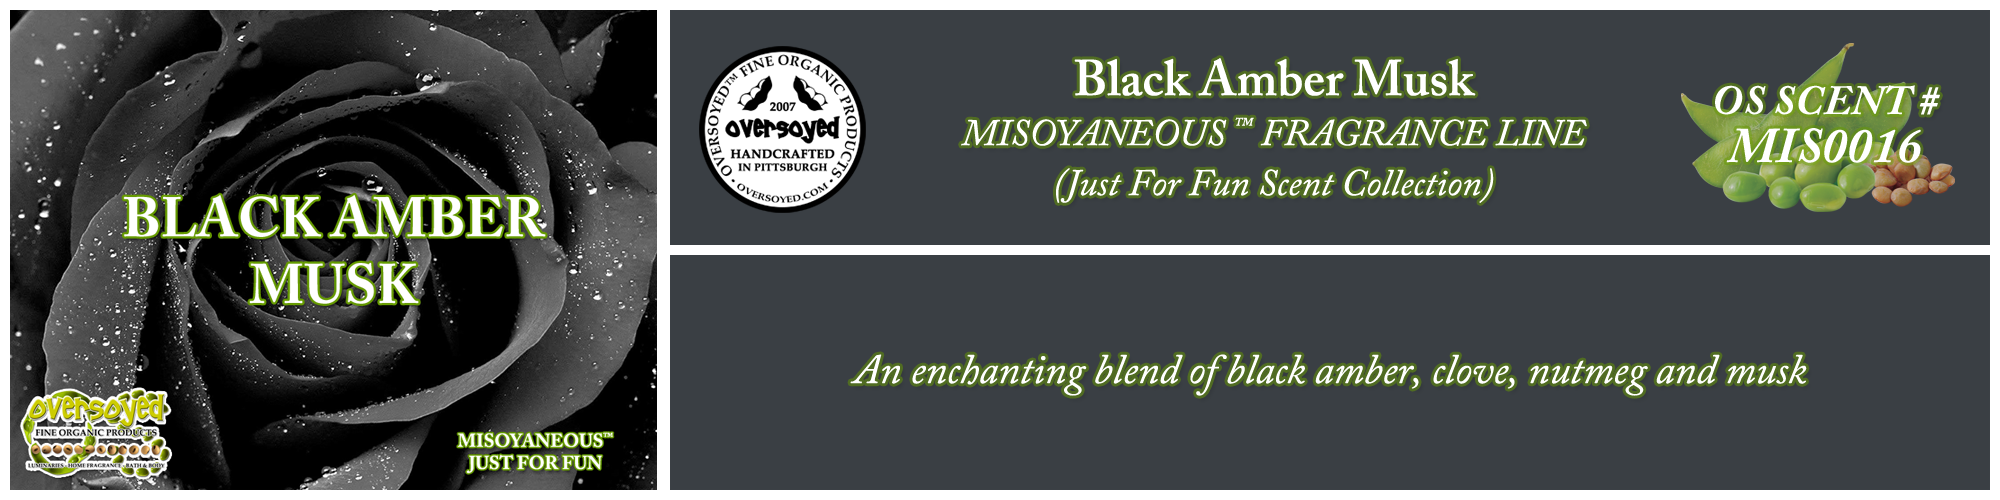 Black Amber Musk Handcrafted Products Collection